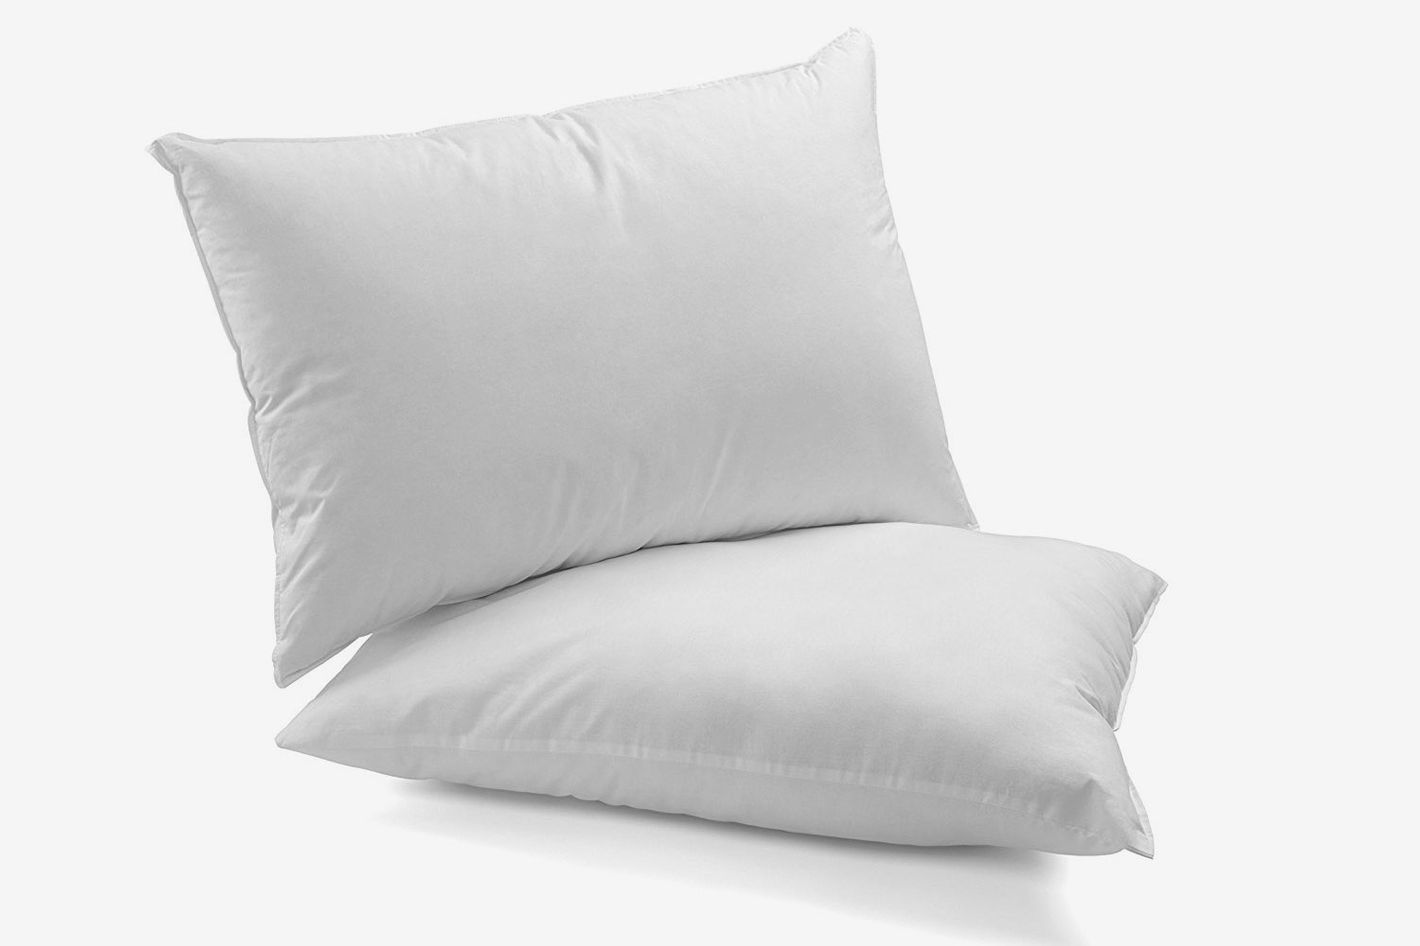 Smarthome Bedding Hotel Collection Plush Down Alternative Pillows Set Of 2